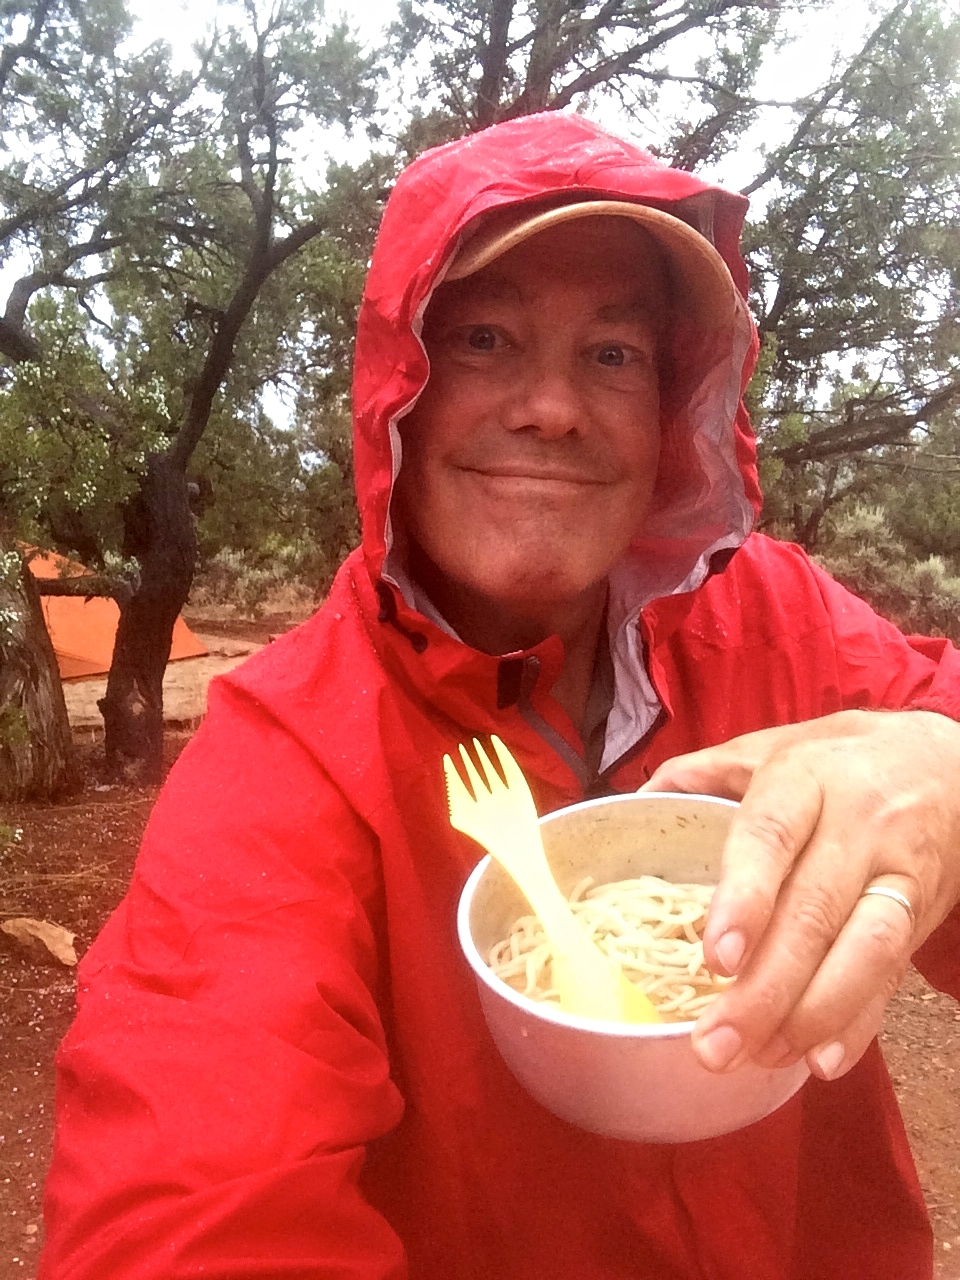 Noodles in the Rain